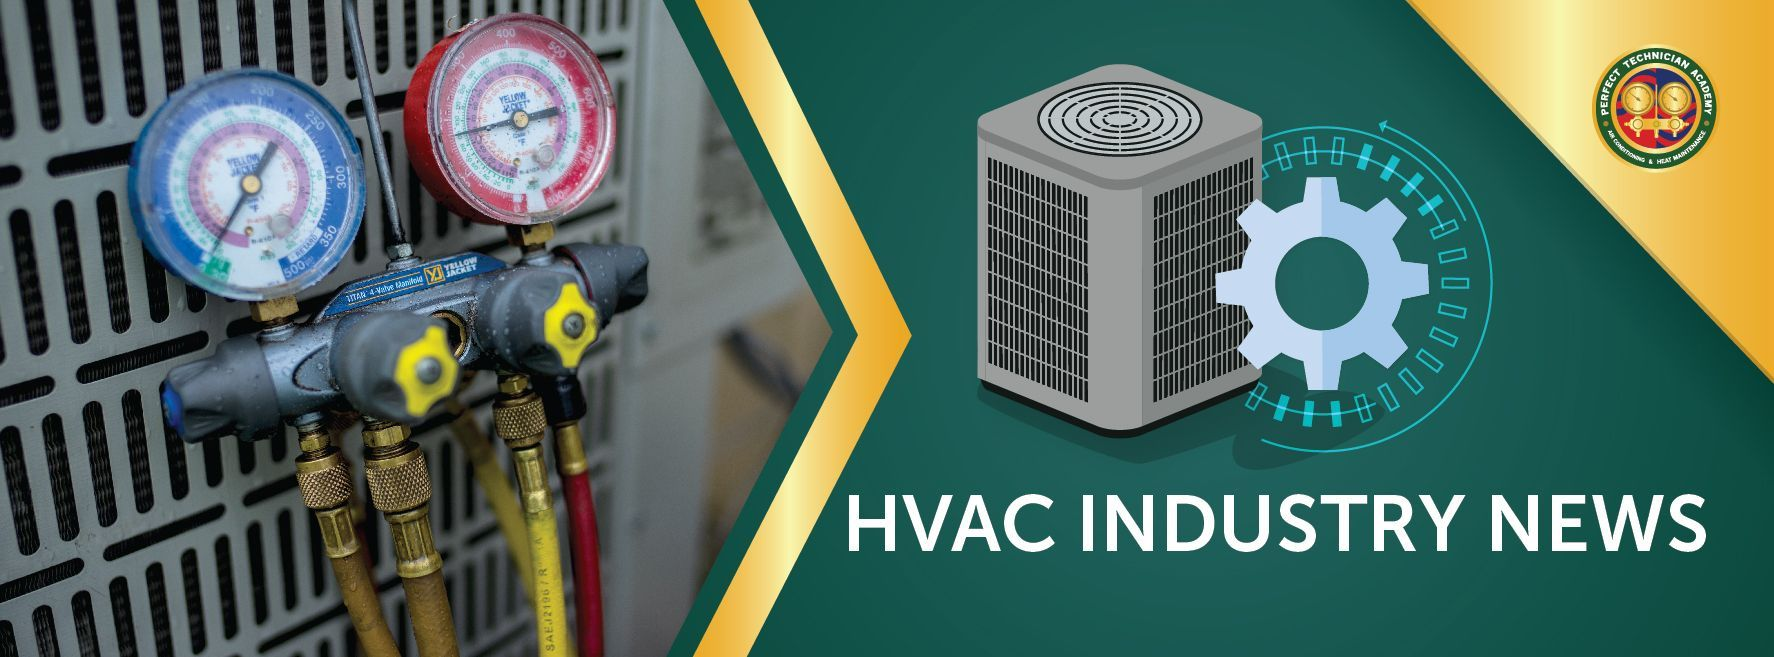 Wait! You Might Be Replacing the Wrong HVAC Component!